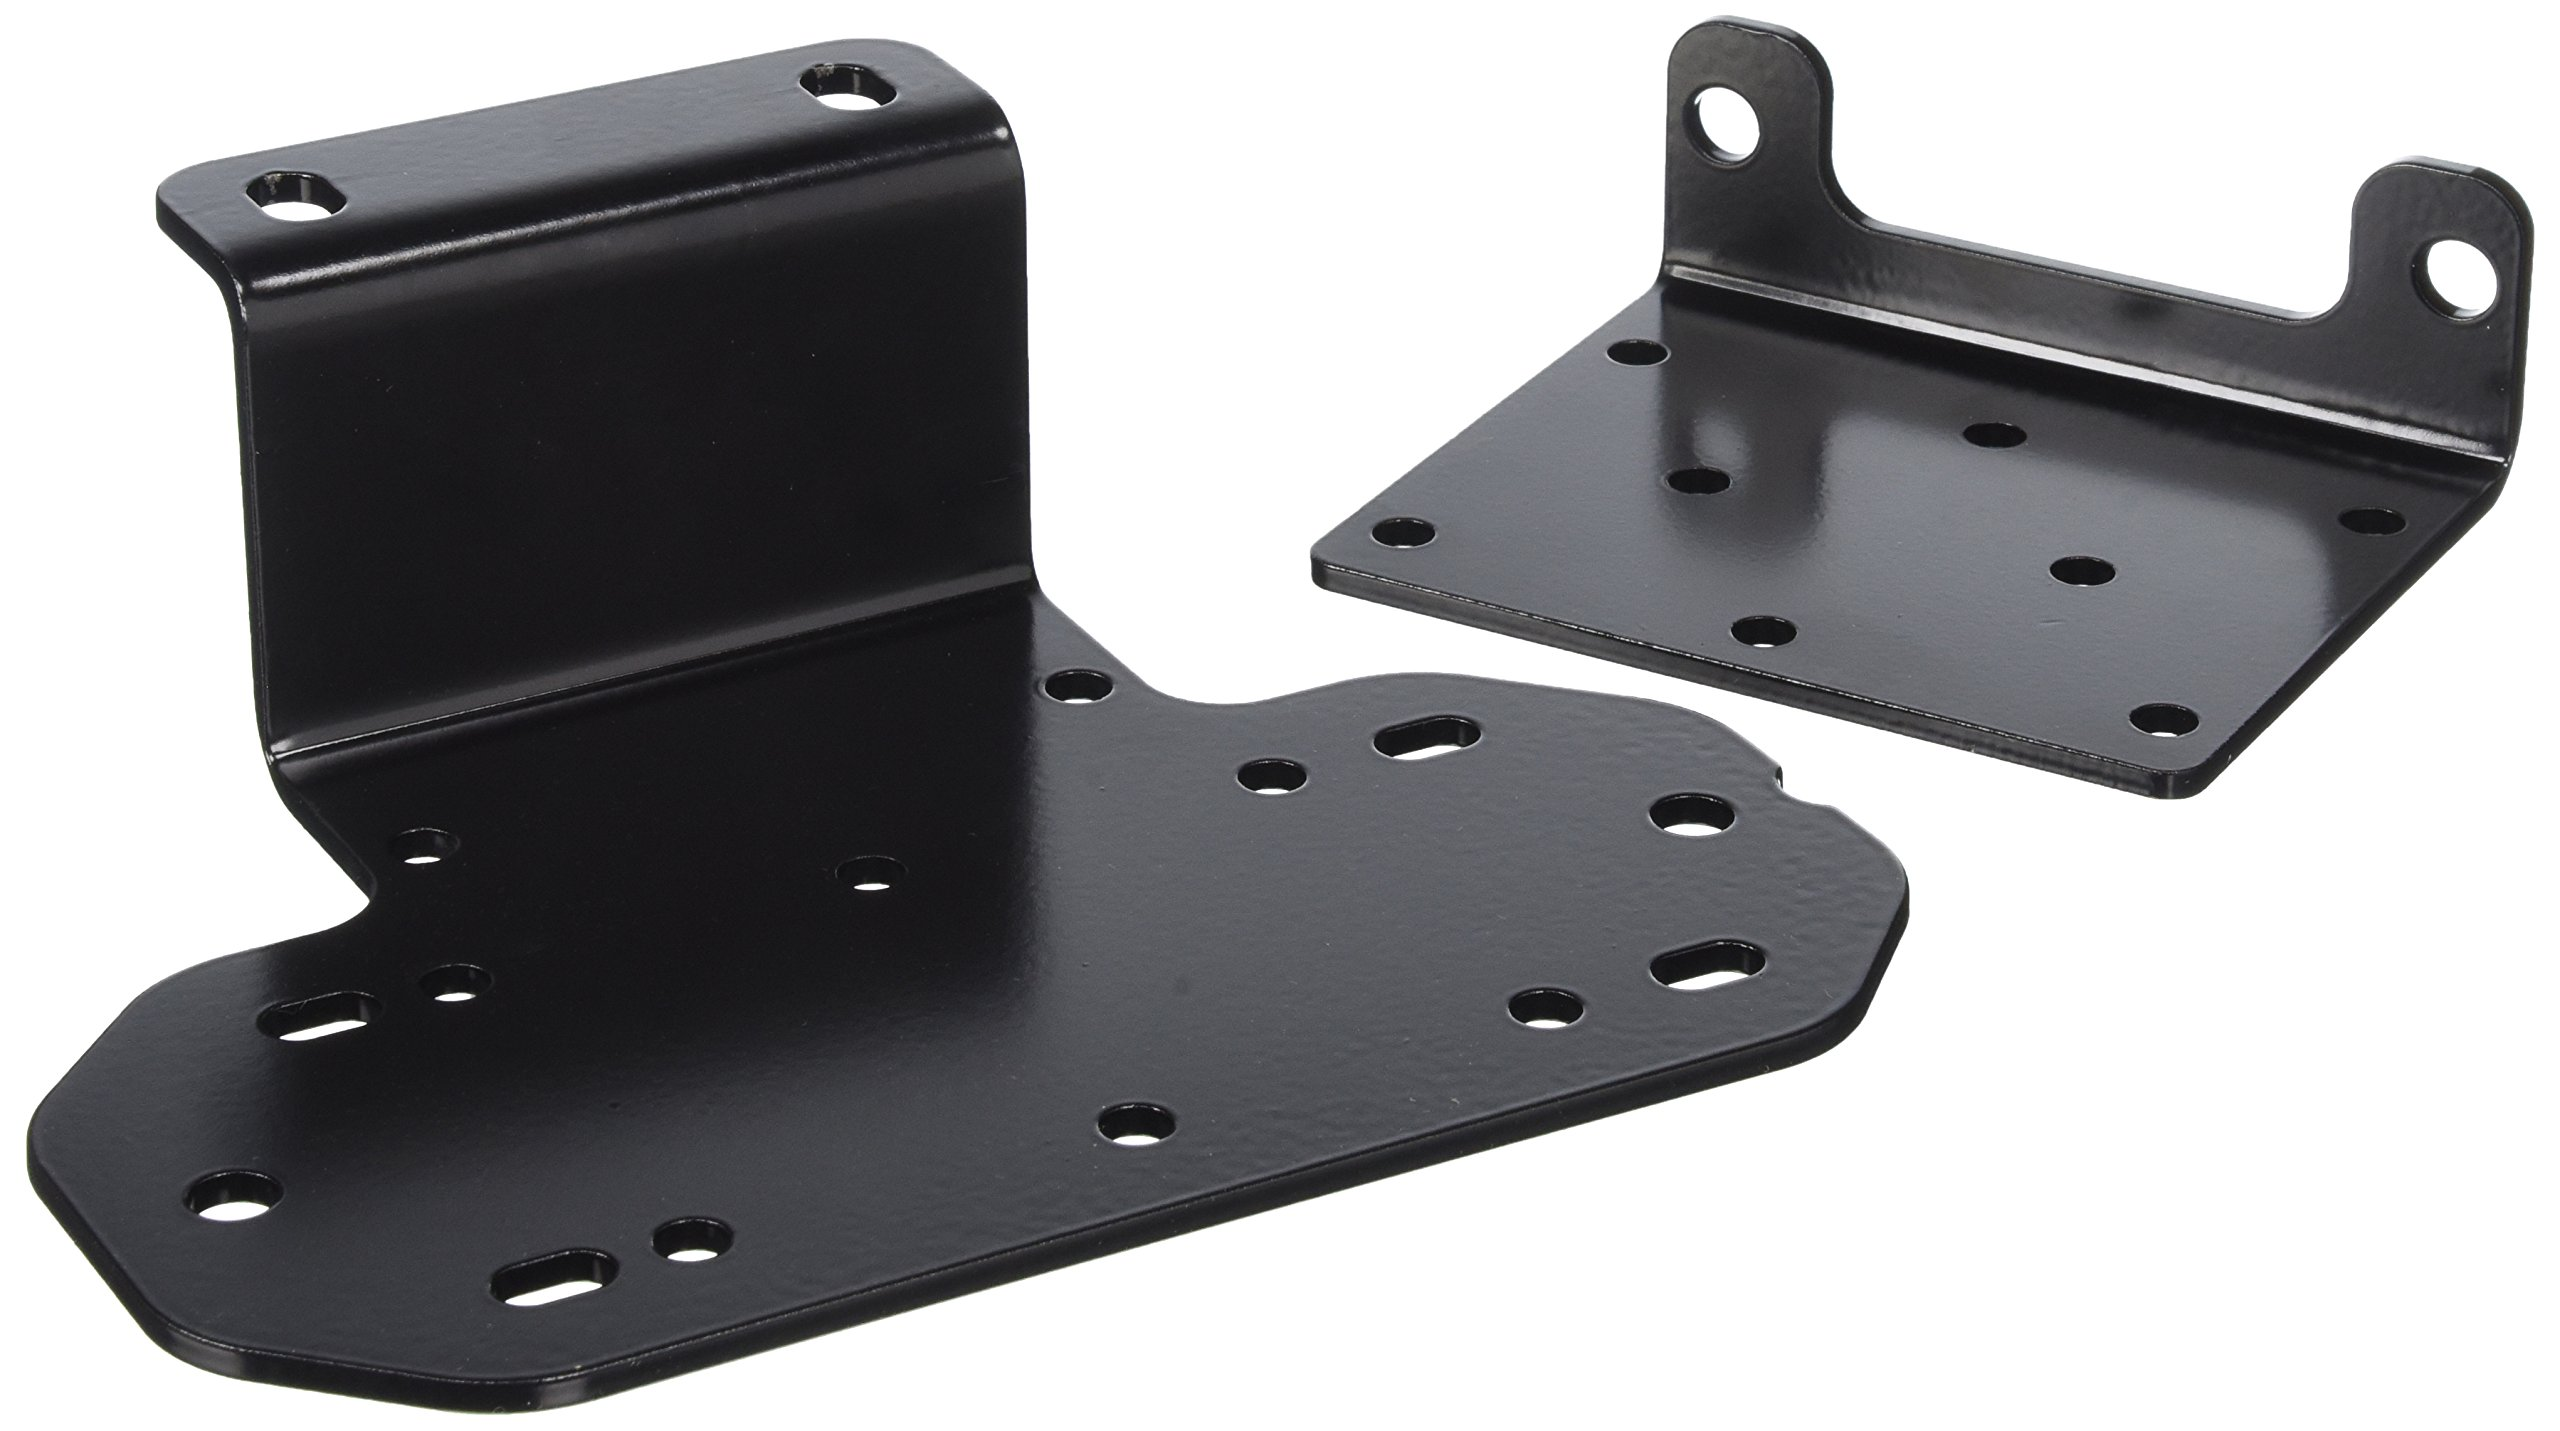 KFI Products 100550 Winch Mount for Yamaha Rhino by KFI Products